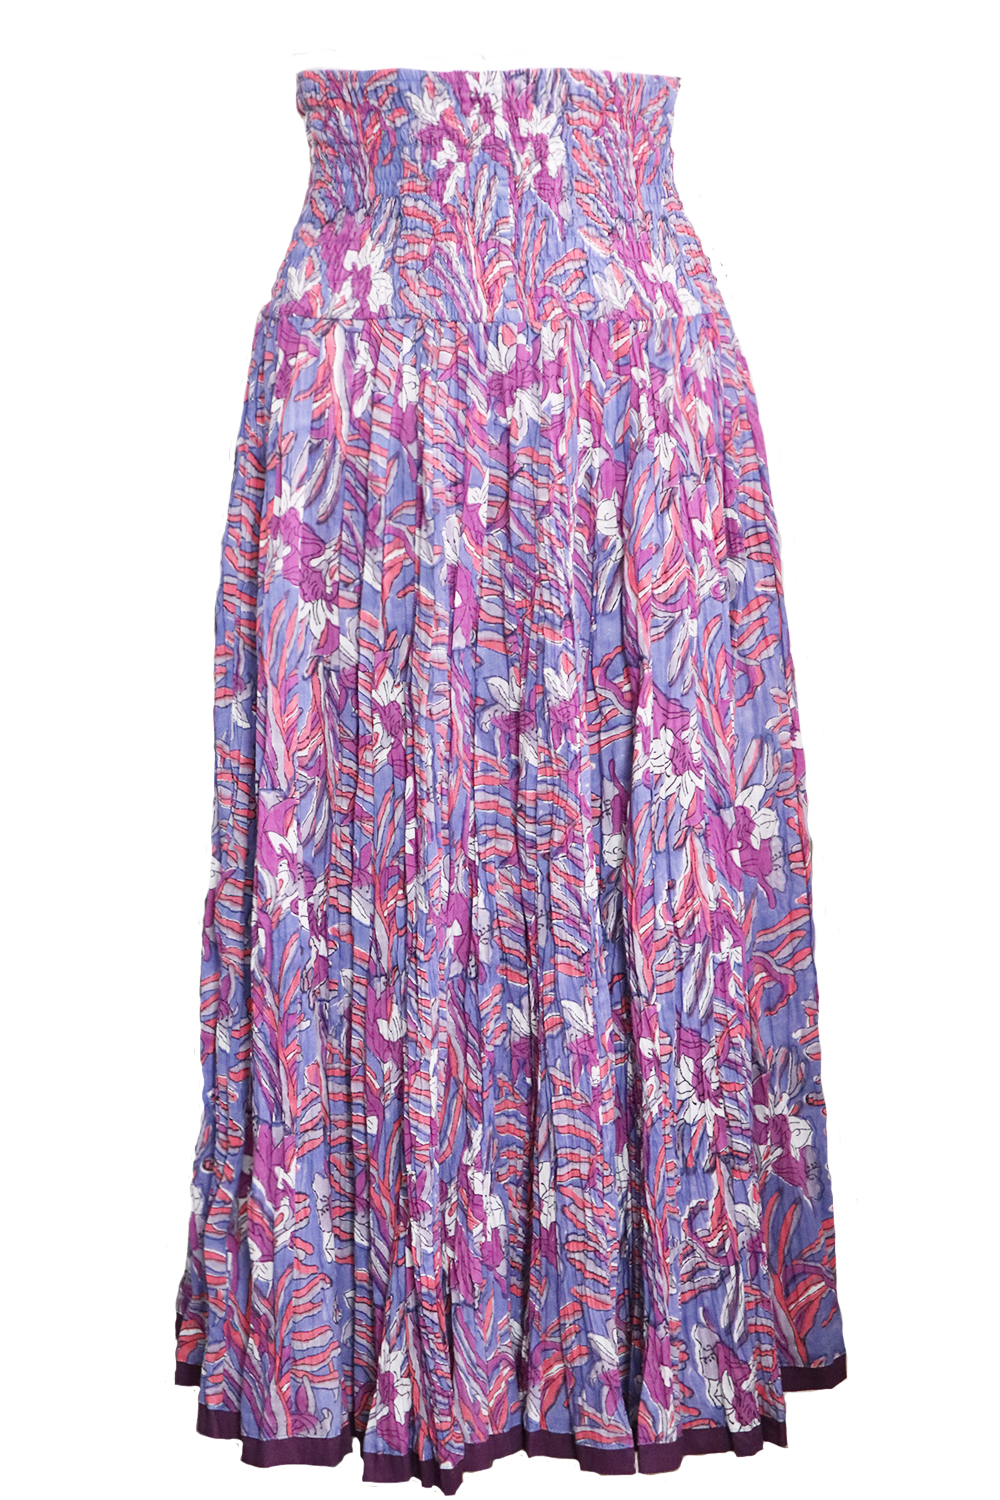 Nila Rubia 50 panel skirt in purple